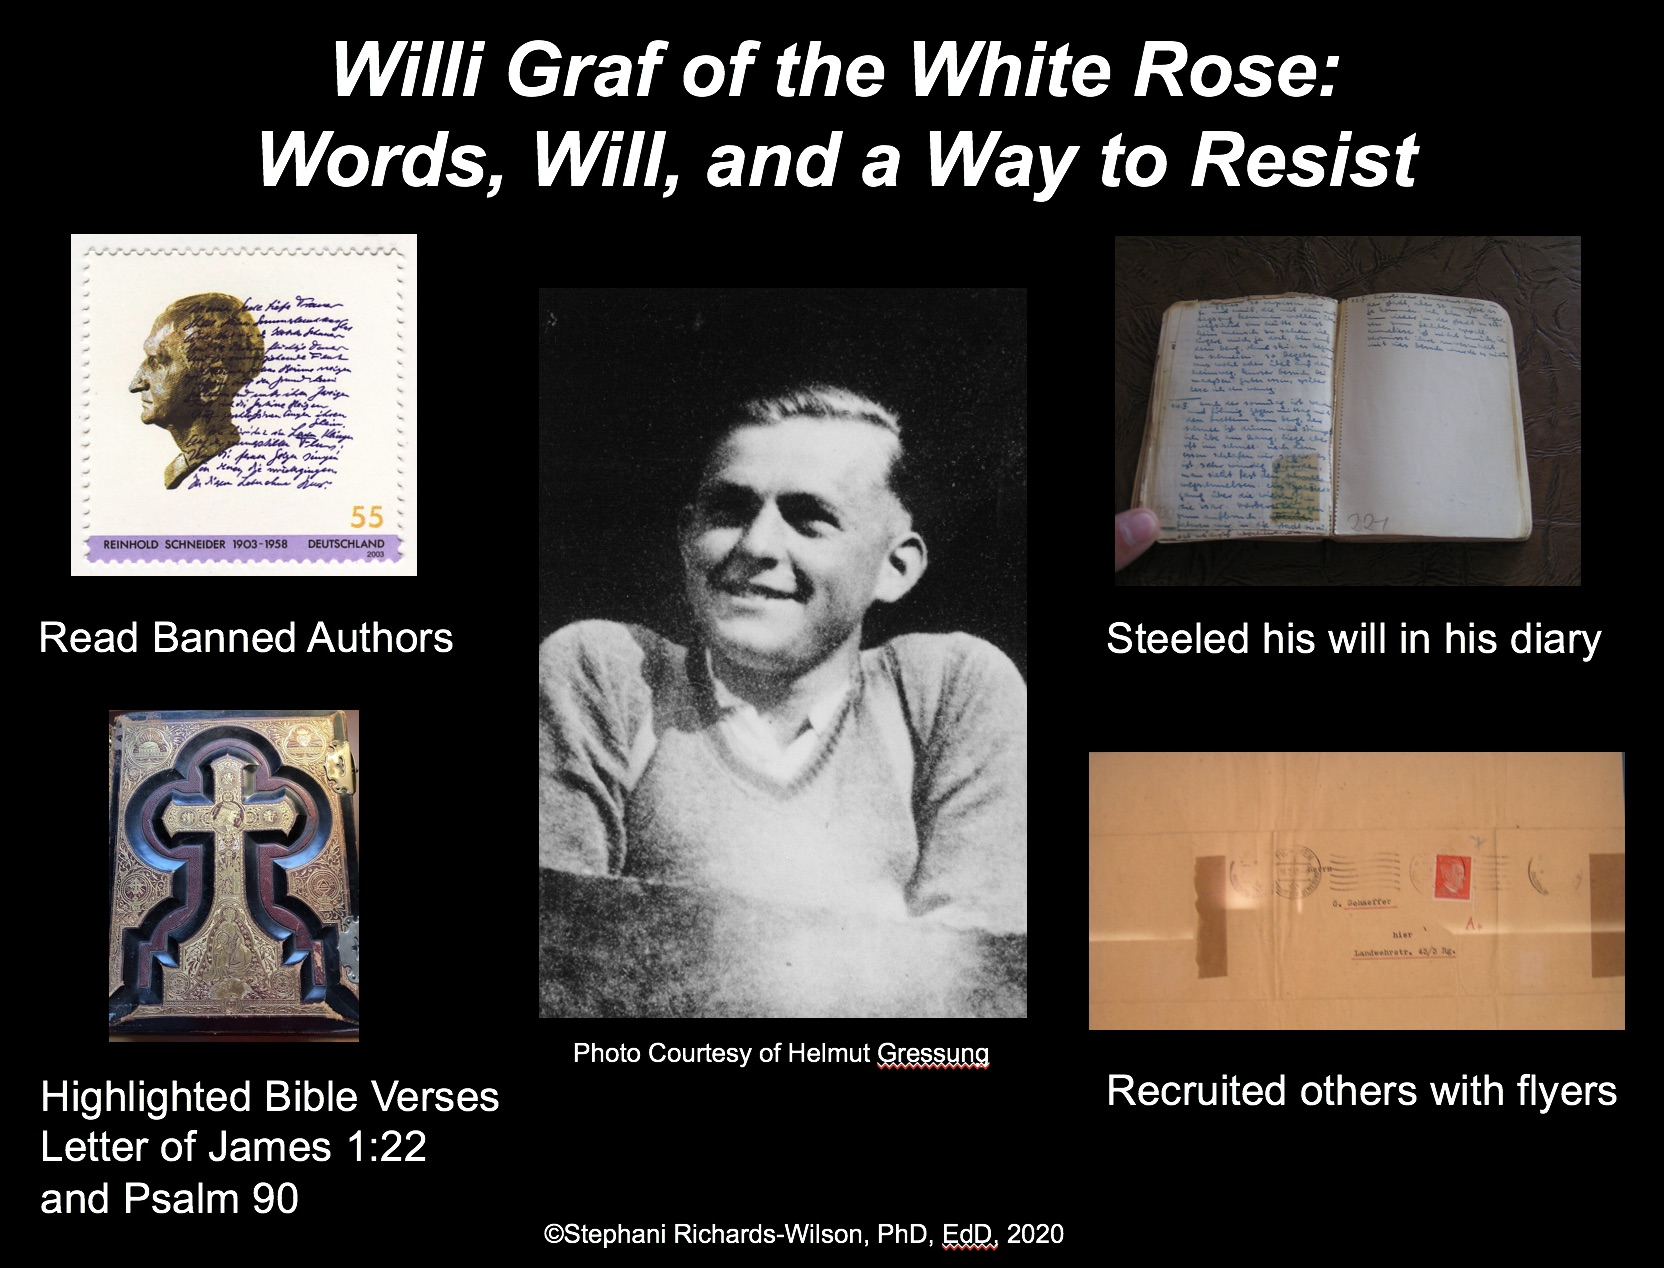 Richards-Wilson (JPEG for White Rose Project 2020) copy